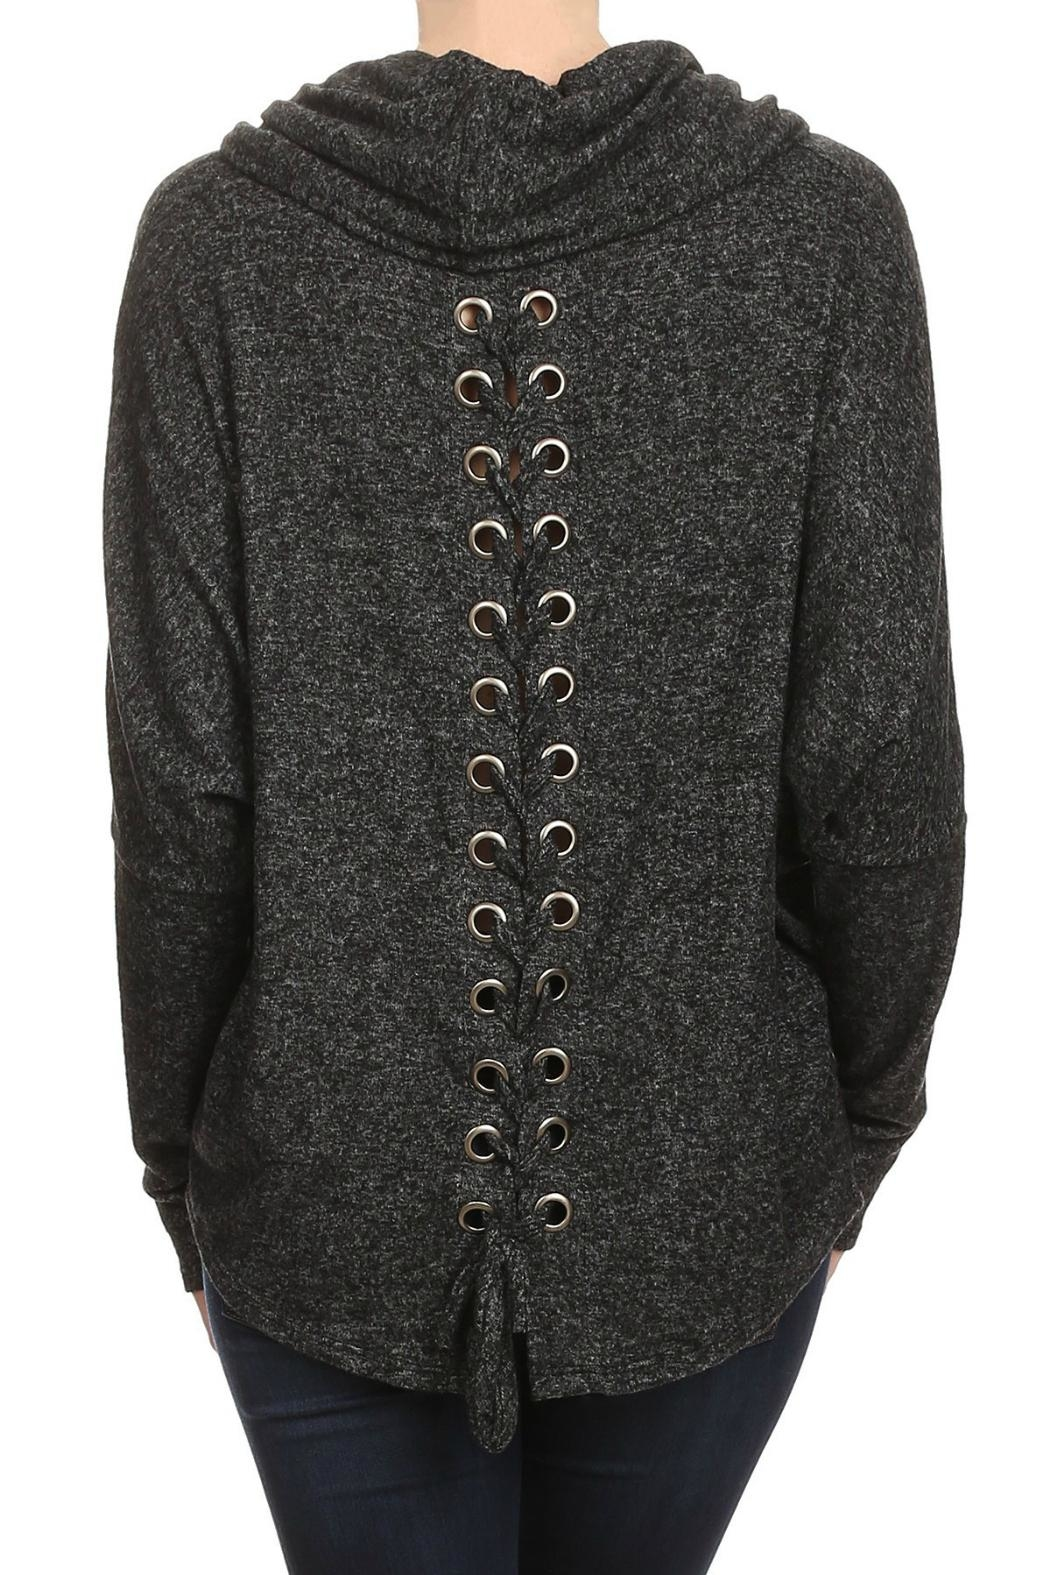 Ariella Lace-Up Back Sweater - Front Full Image